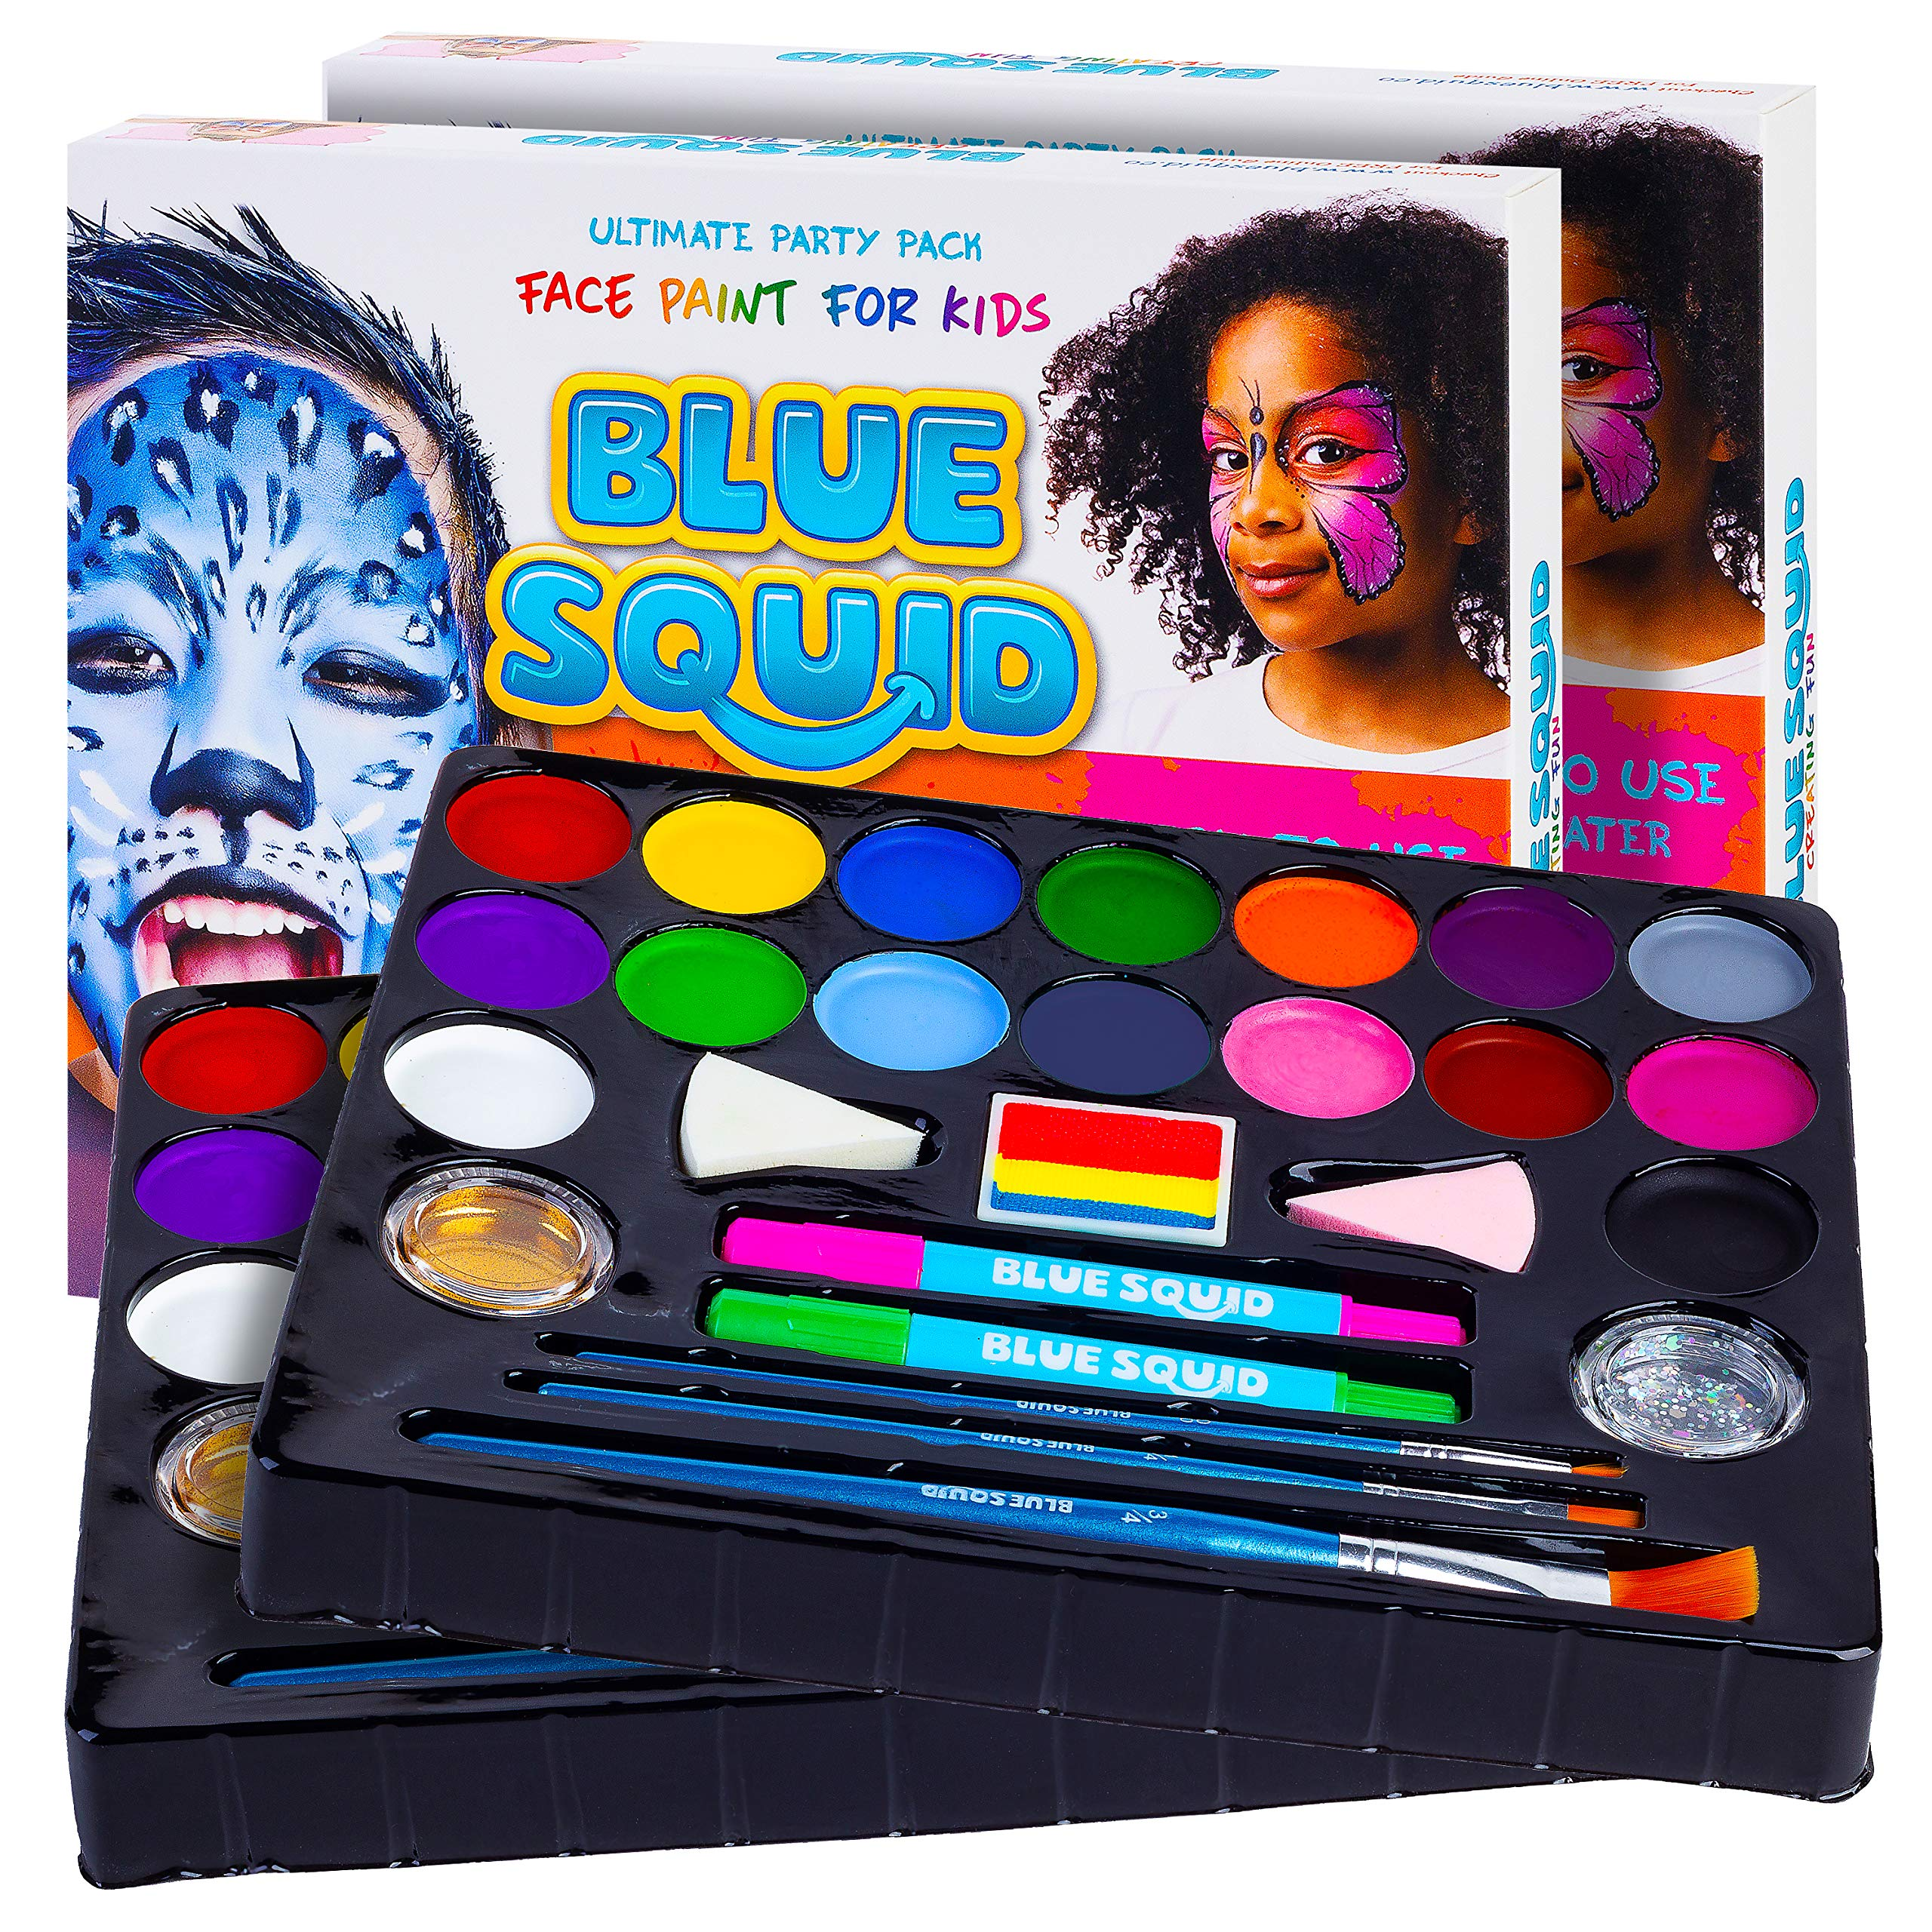 Face Paint Kit for Kids - Jumbo Stencils, 16 Large Paints, Rainbow Cake, 168 Gems, 2 Hair Chalk Pens 3 Professional Brushes 2 Glitter Quality Body Painting Set Halloween Makeup Skin Safe (2 Pack) by Blue Squid